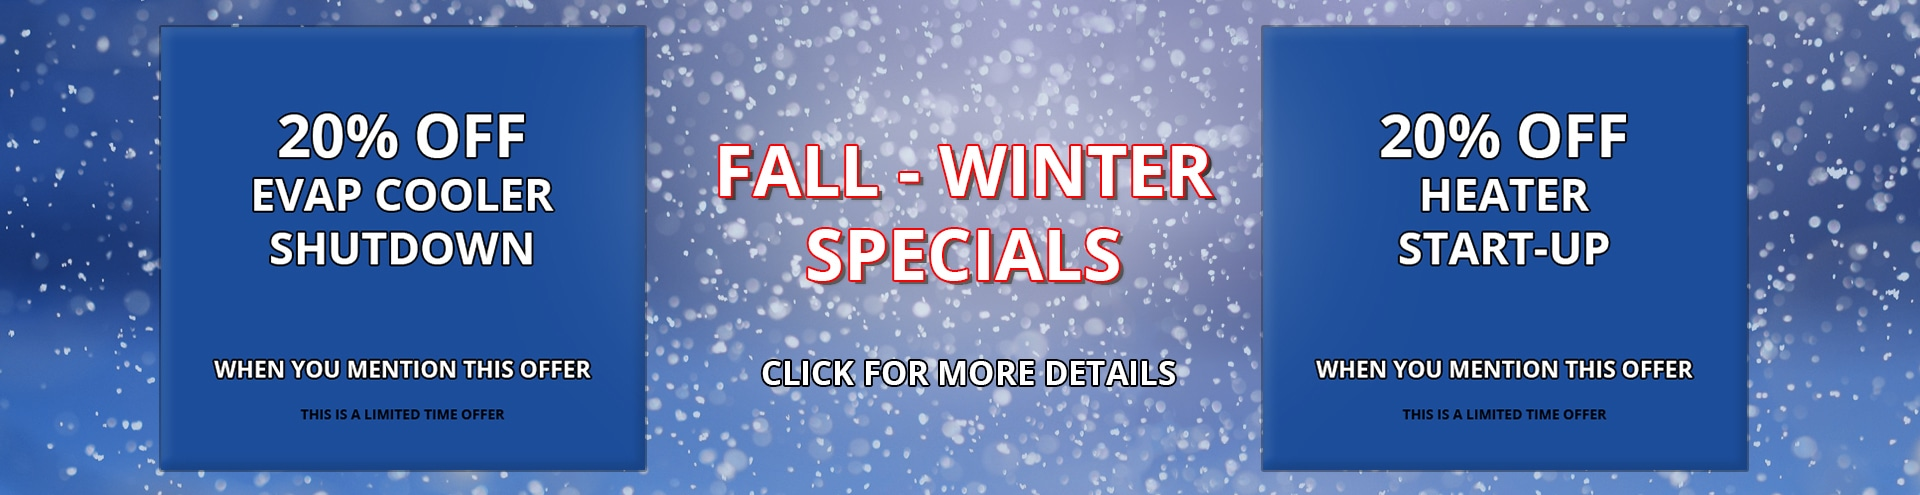 Fall to Winter 2018 Specials, click for more details